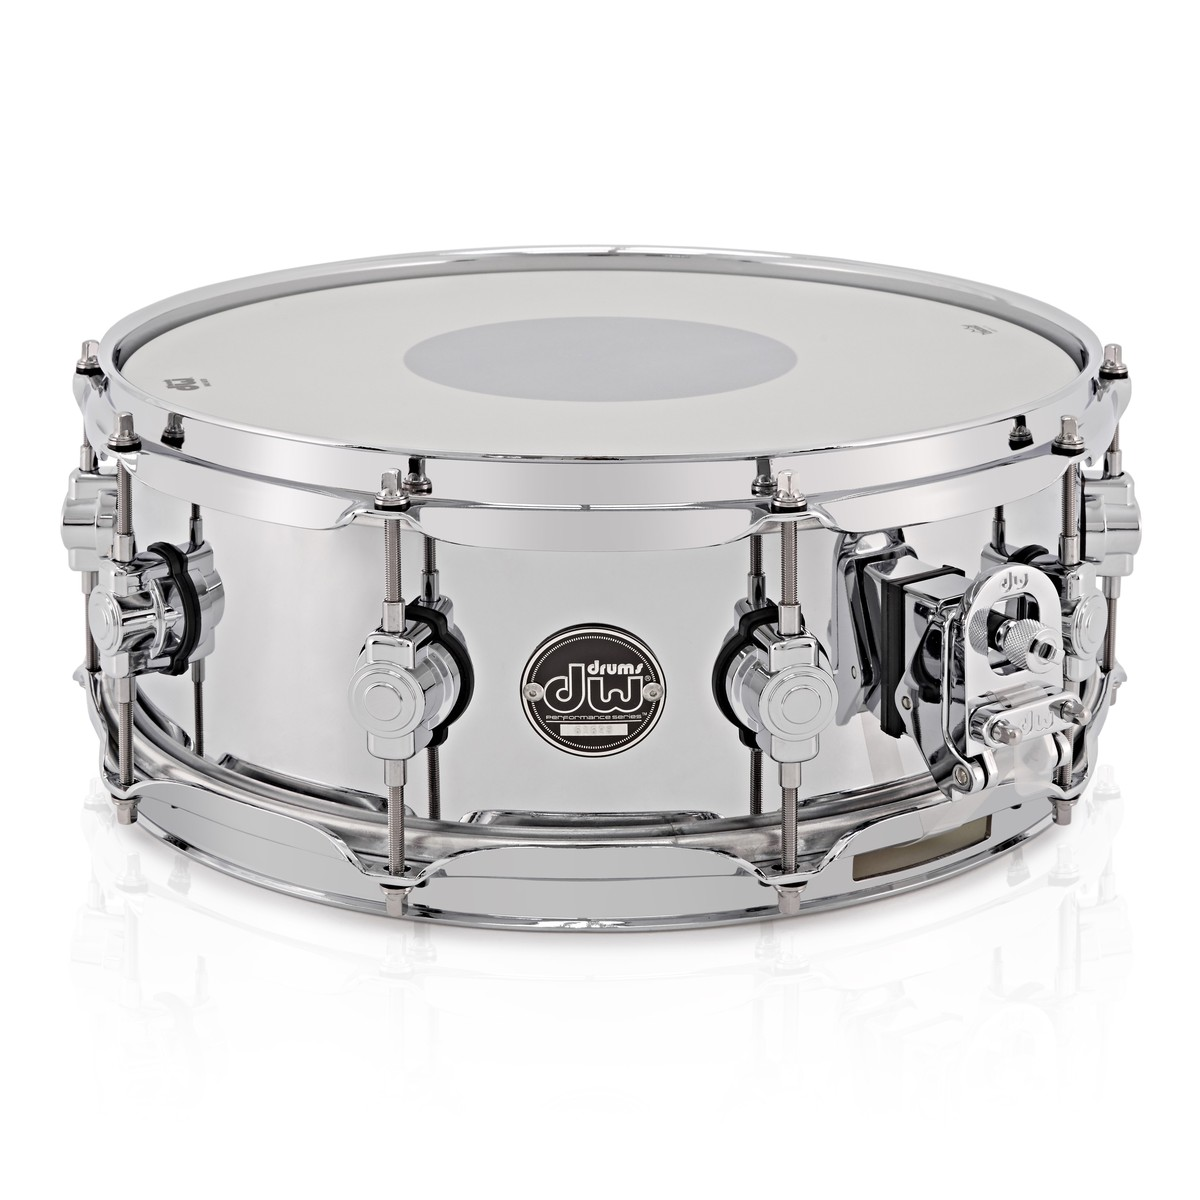 dw drums performance series 14 x 5 5 snare drum steel at gear4music. Black Bedroom Furniture Sets. Home Design Ideas